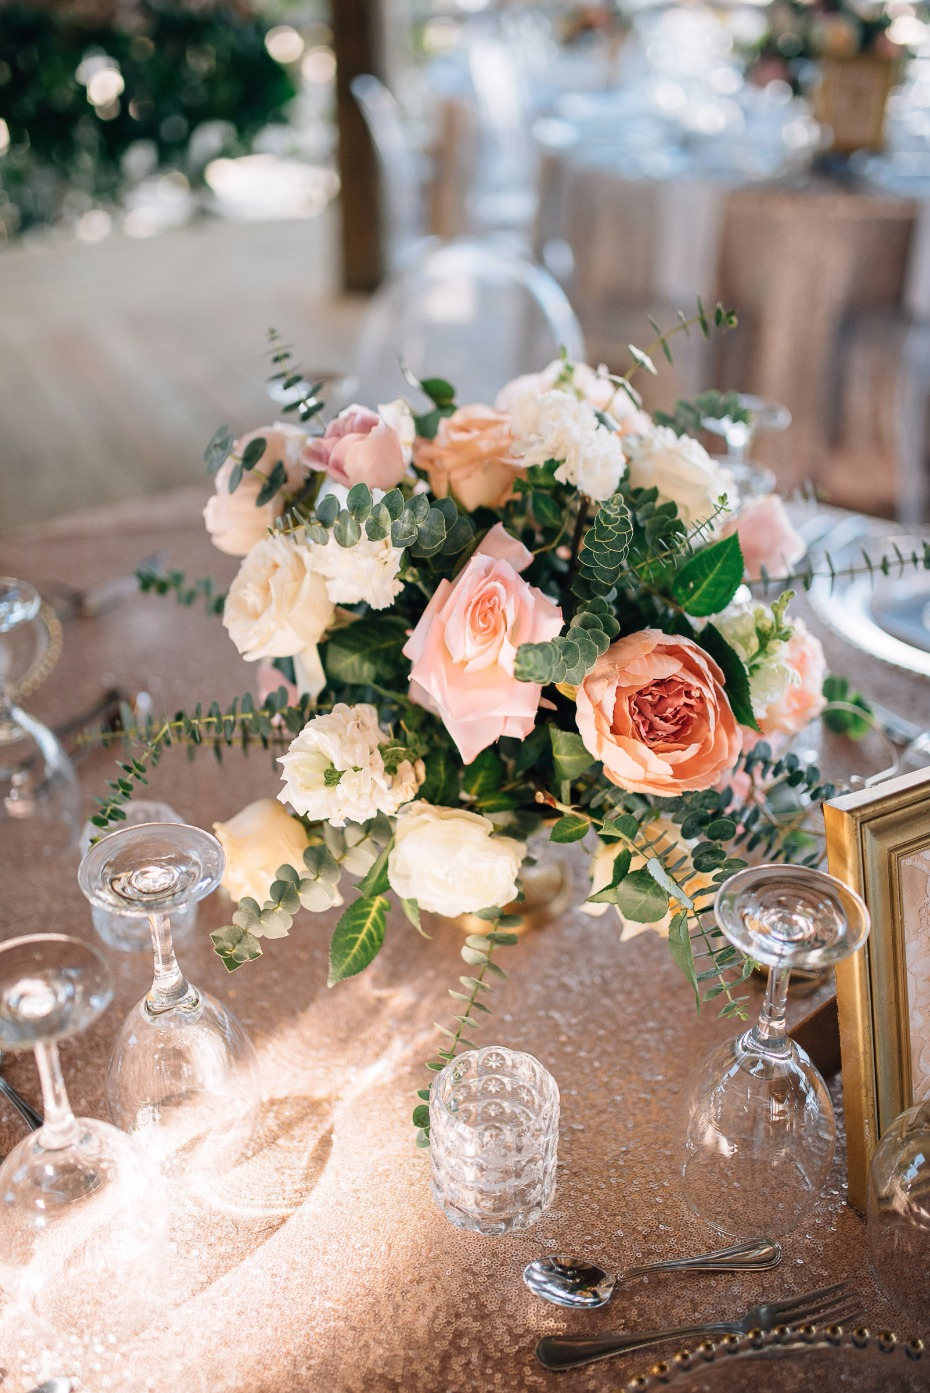 elegant wedding flowers for your table centerpieces